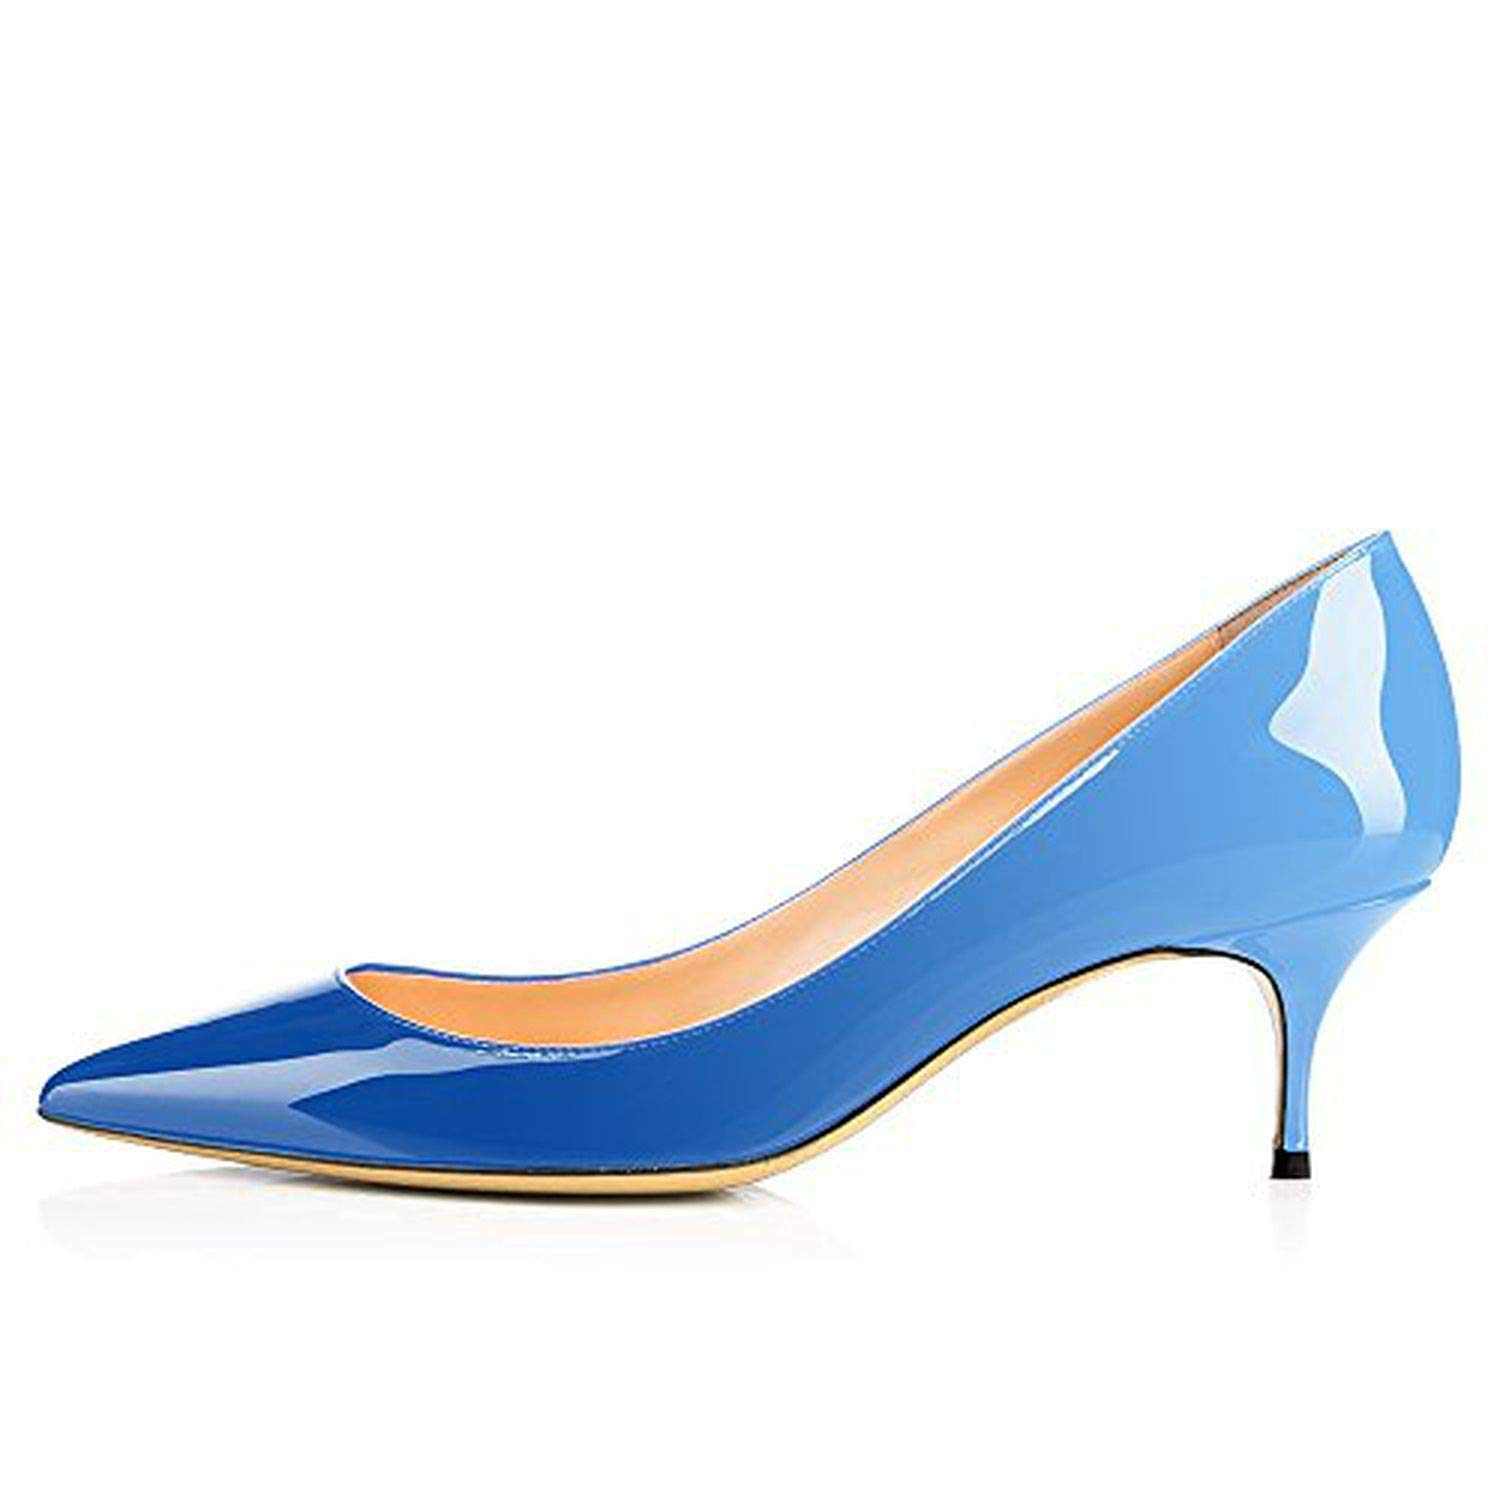 Sky bluee Youthern Woman Heels Big Size Pumps shoes Sexy Pointed Toe High Heels Wedding Bridal shoes